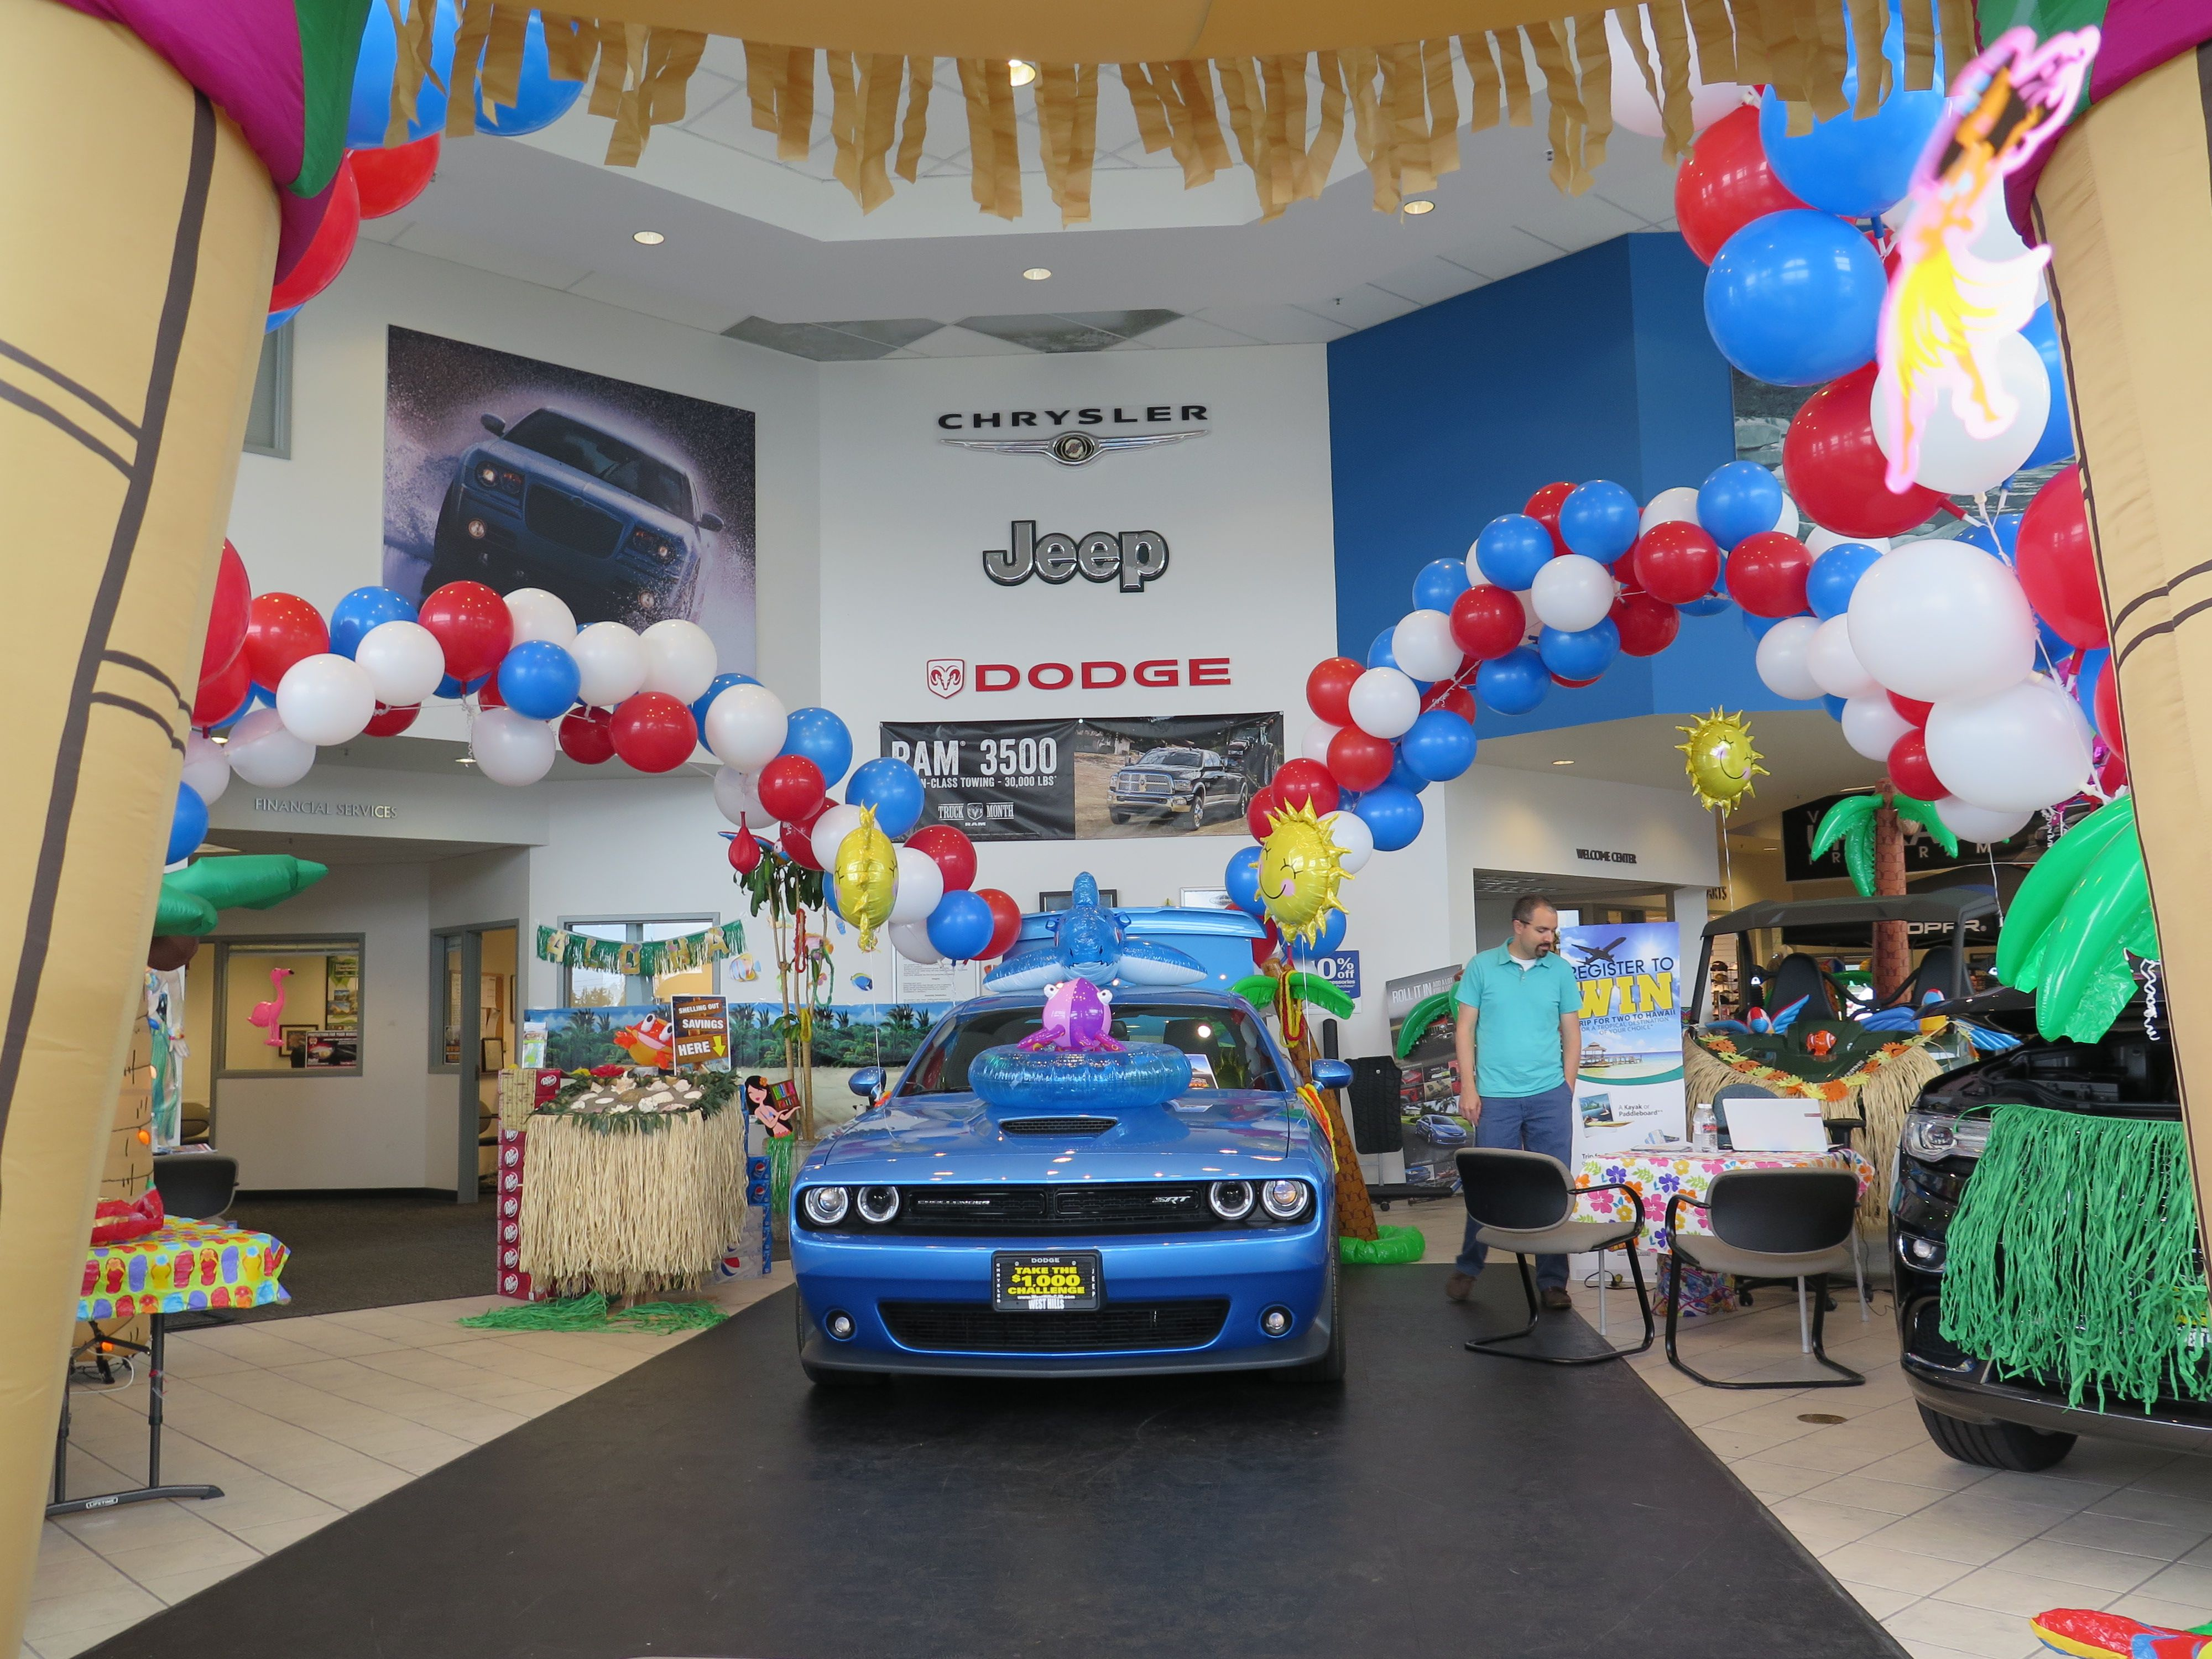 Beach Party At West Hills Chrysler, Jeep, Dodge In Bremerton, Wash.